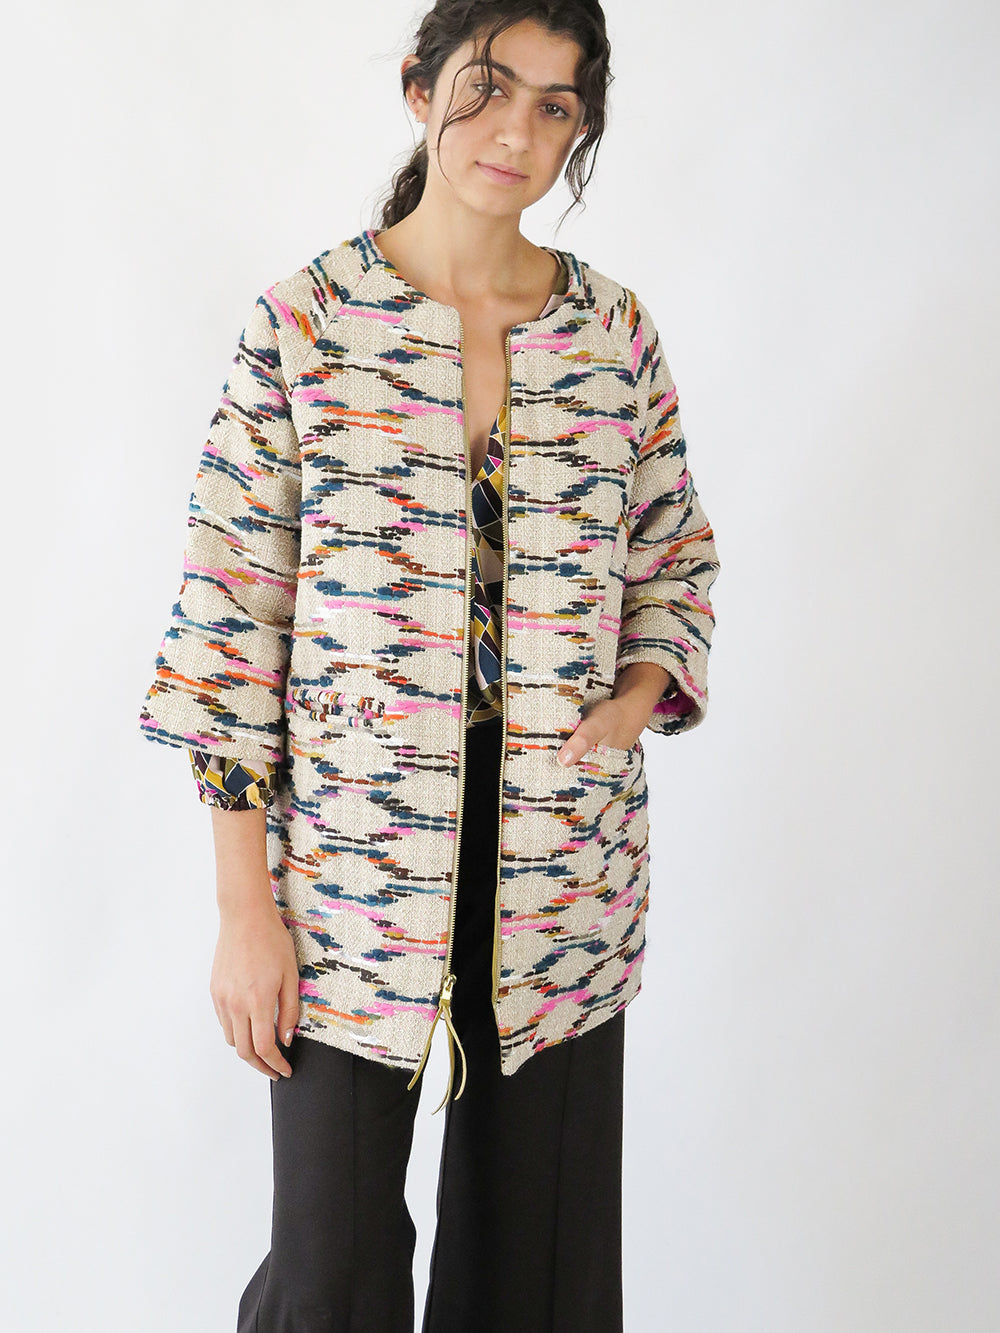 pastis coat in sijuna tapestry